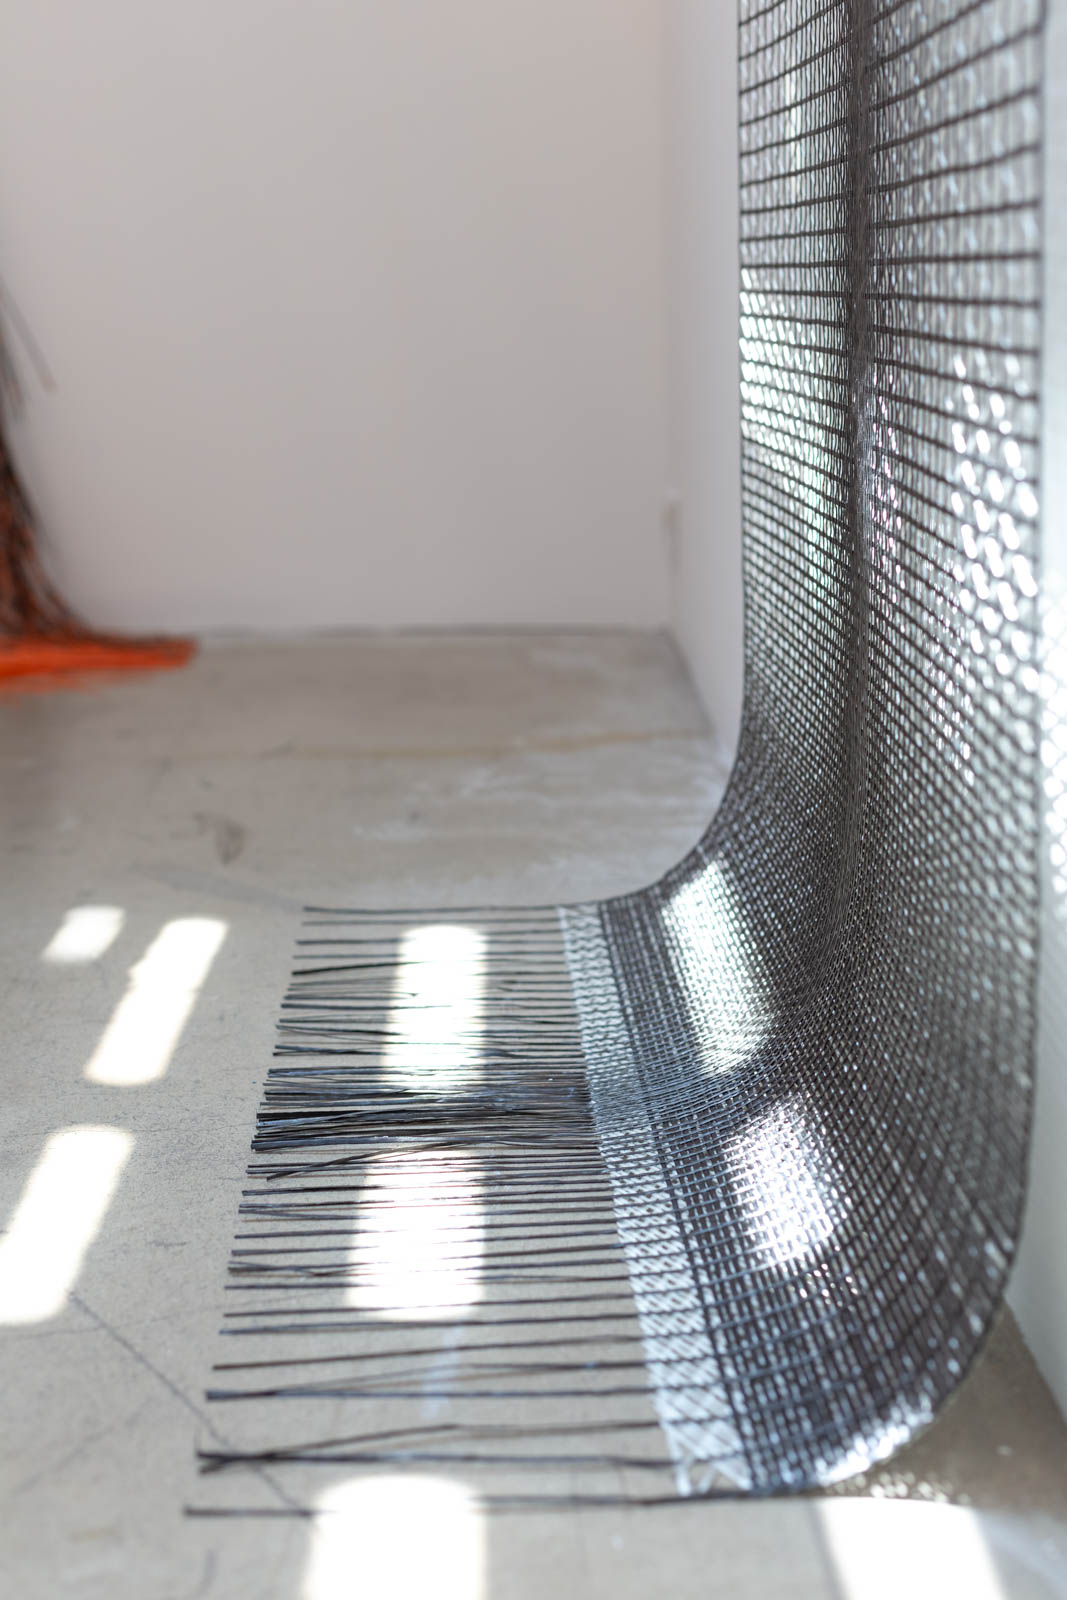 Customizable textile for architecture, design and art